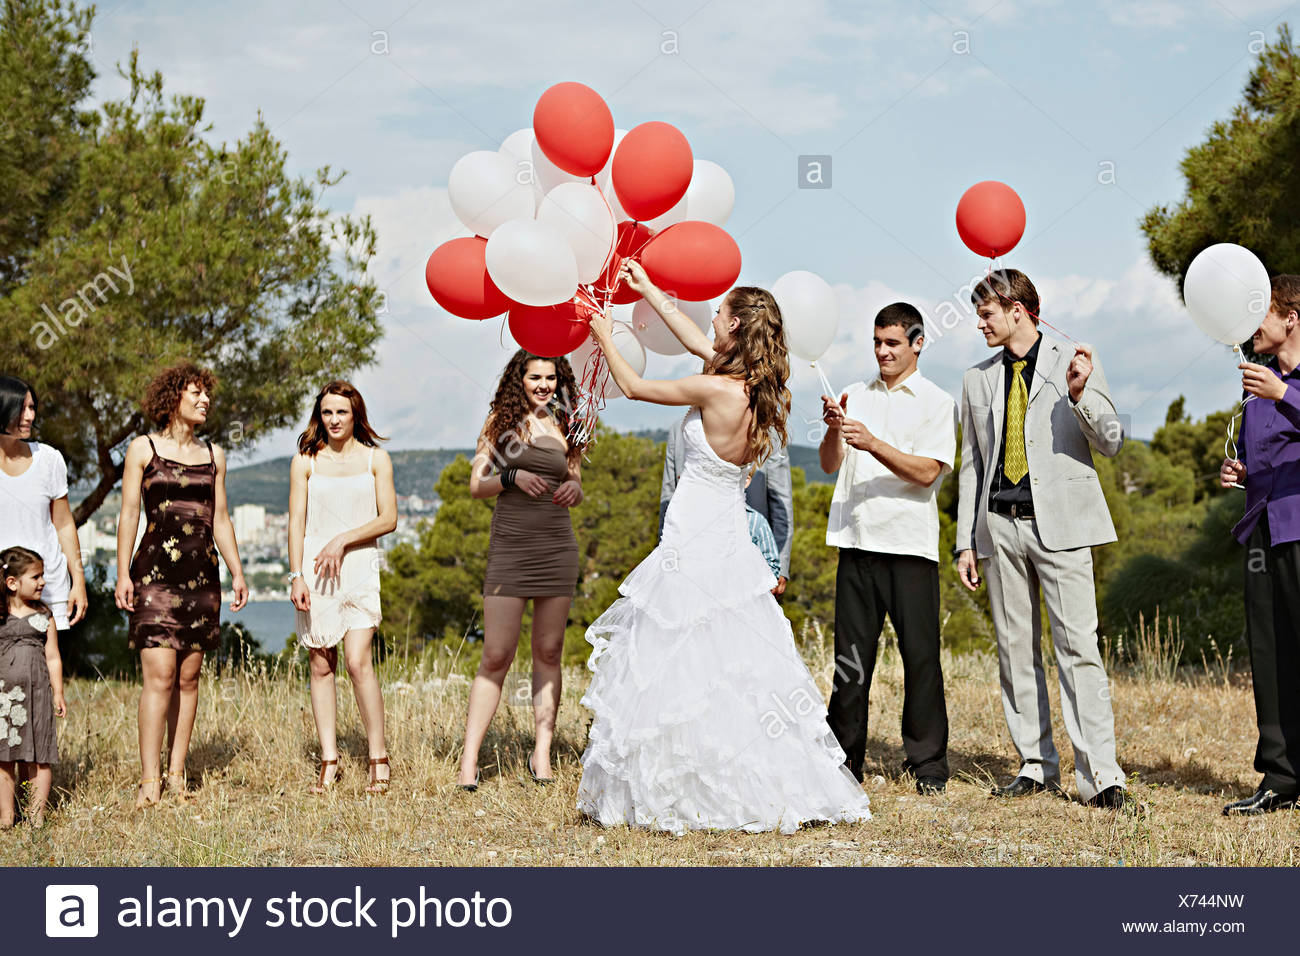 Wedding Guests With Balloons Outdoors, Croatia, Europe - Stock Image